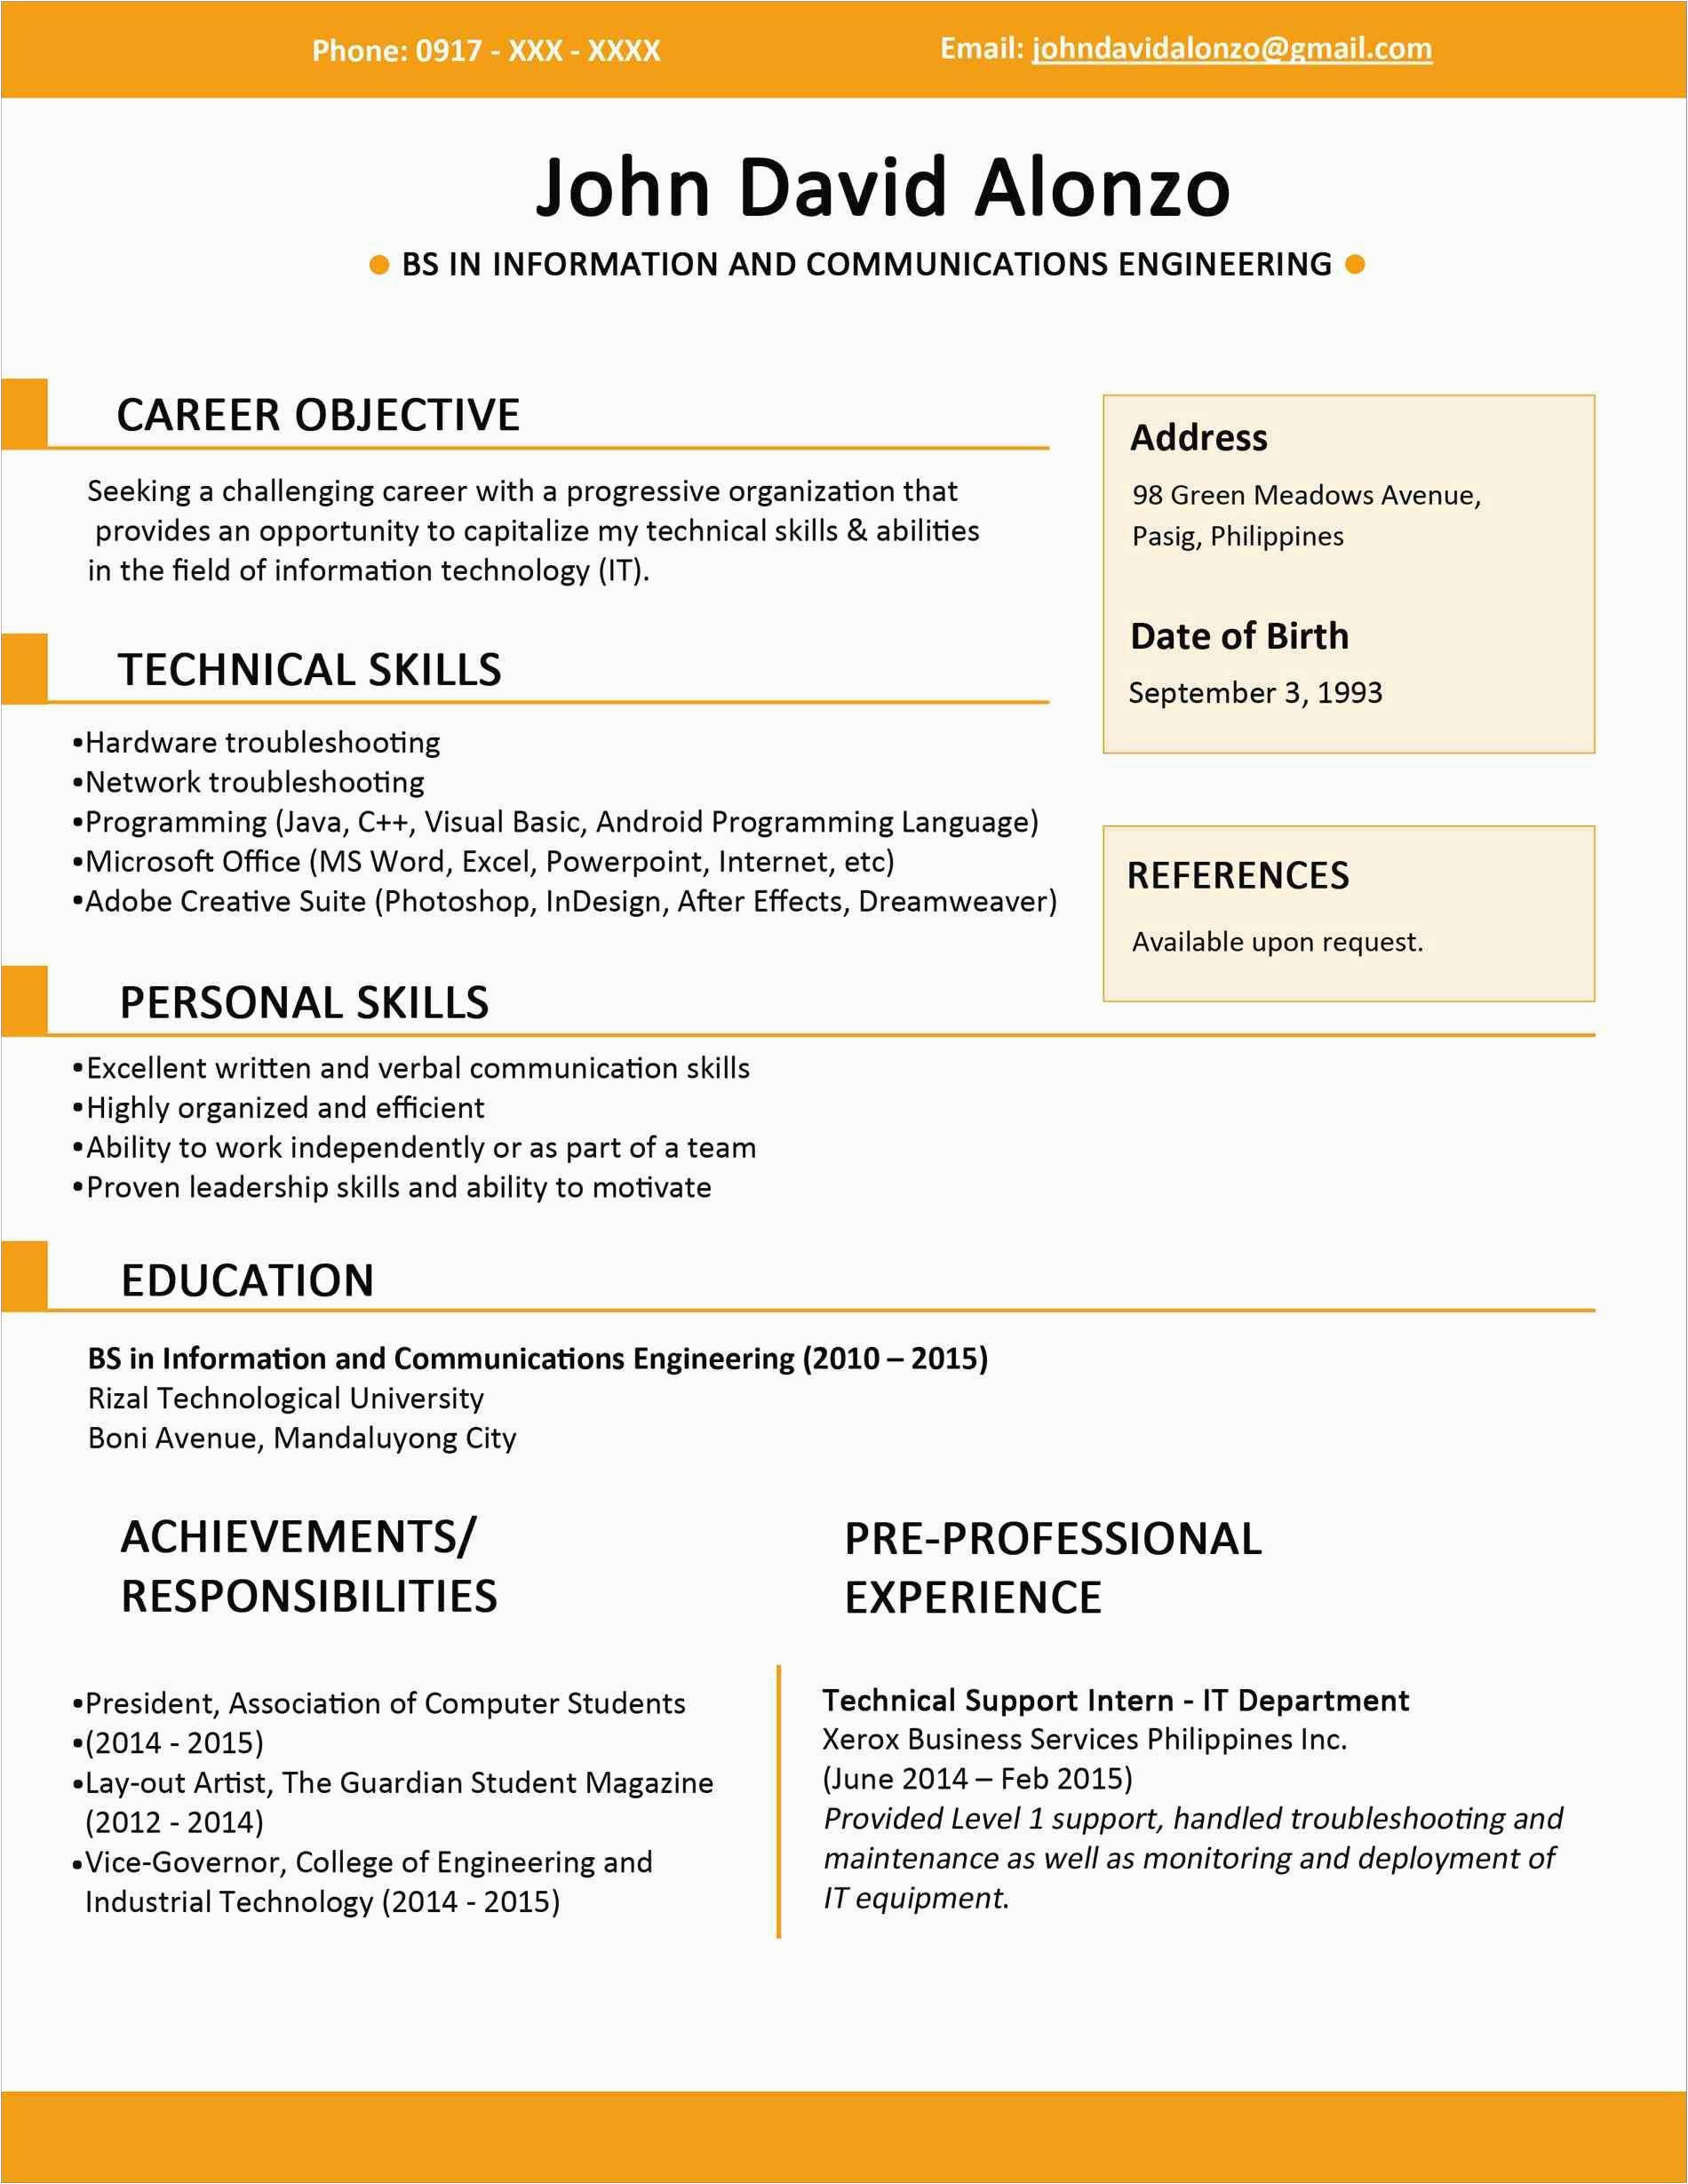 6 Months Experience Resume Sample In software Engineer 6 Months Experience Resume Sample In software Engineer